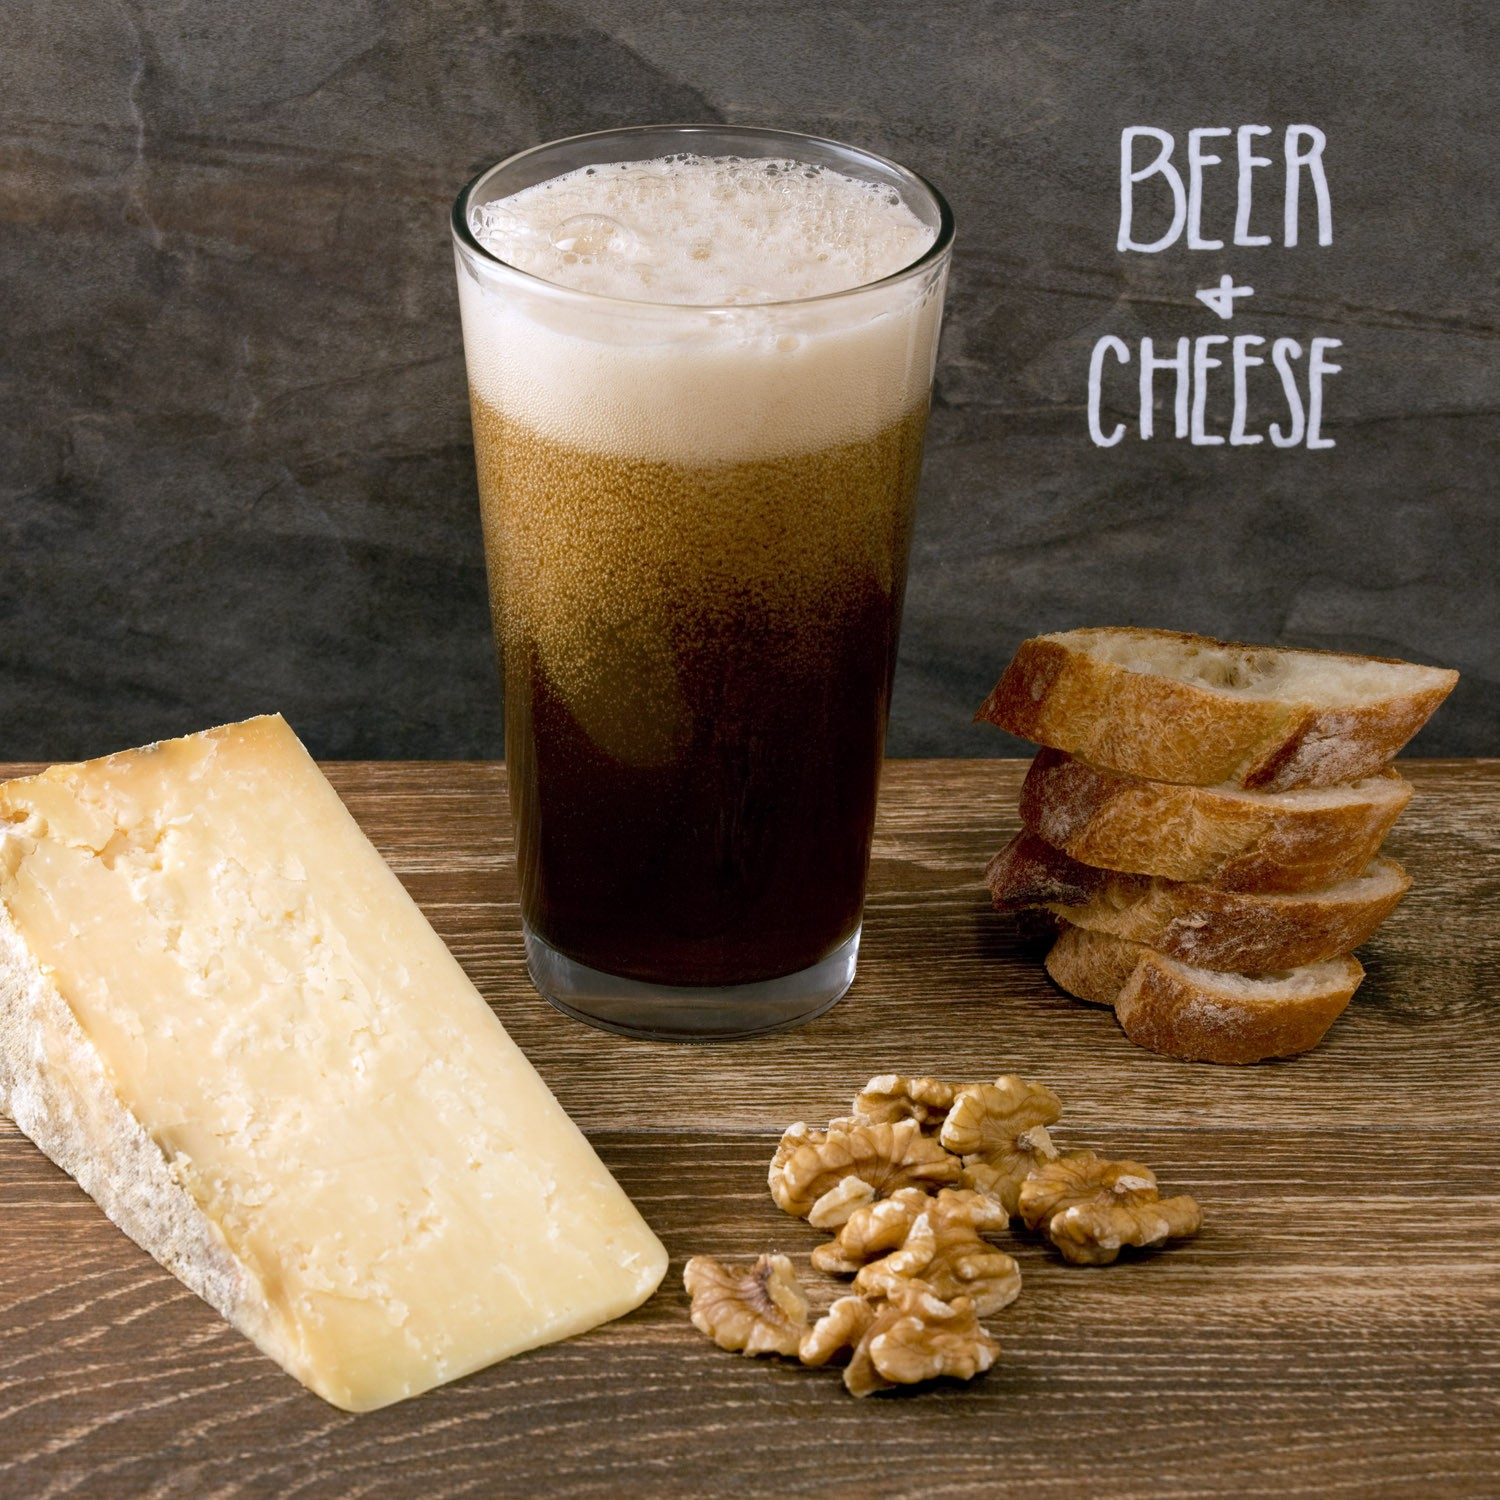 beer and cheese.jpg